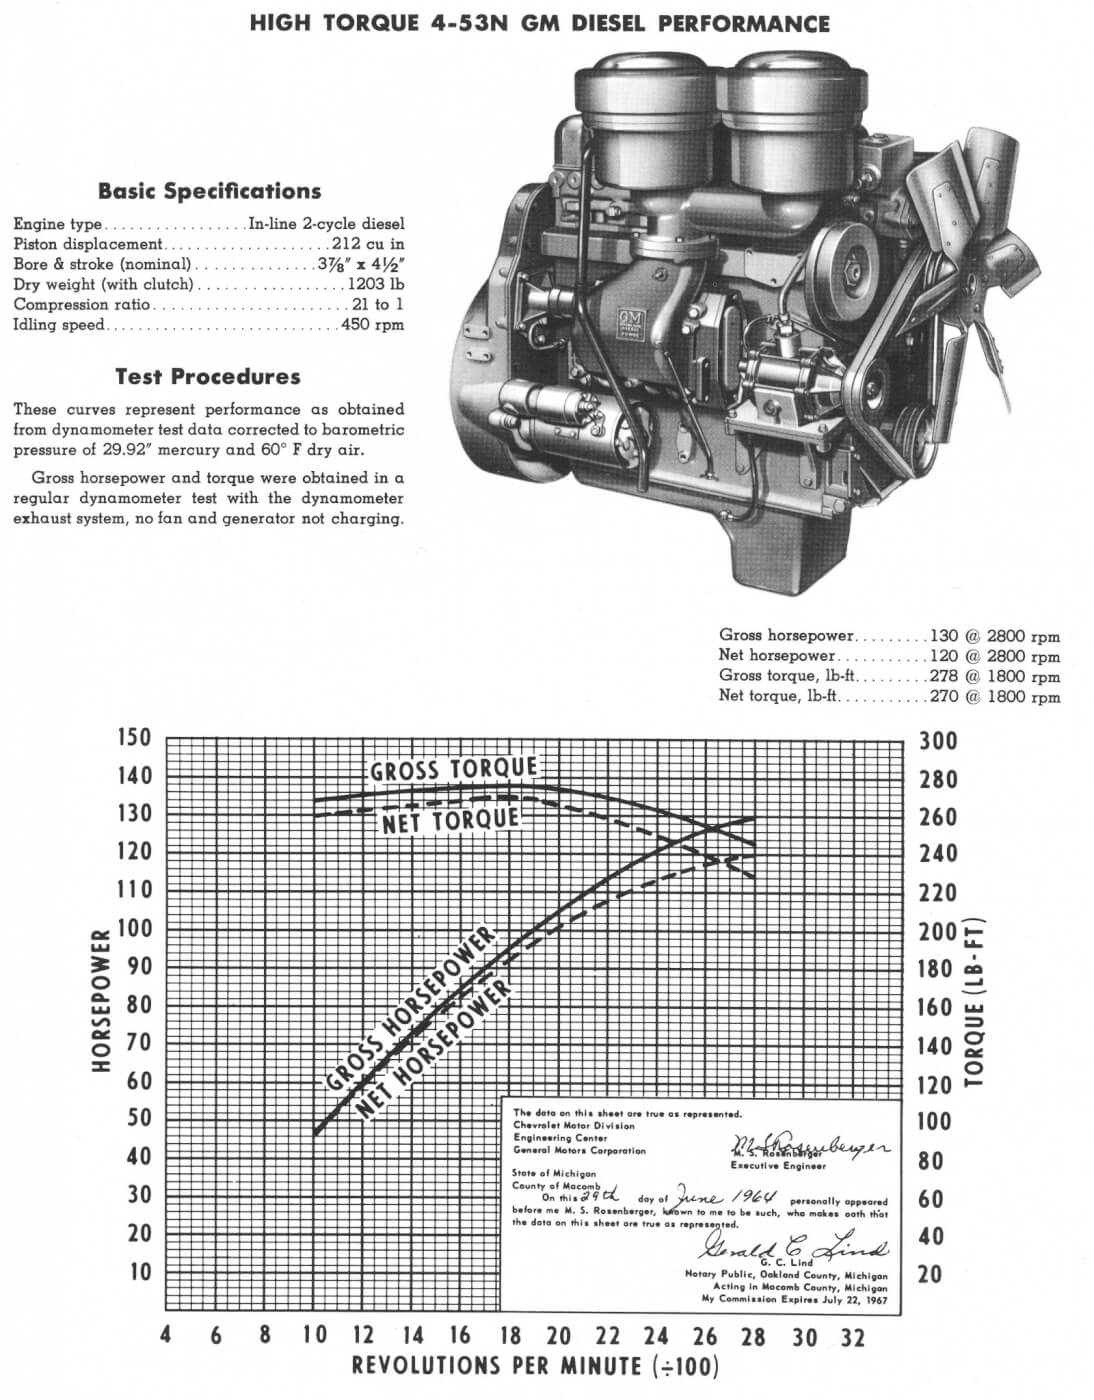 Tractor Talk Jimmy Screamin At Ollie1963 Oliver 1900 Gm 44 2 Stroke Diesel Engine Diagram Heres The Generic Data On A 4 53n From Same Era Note